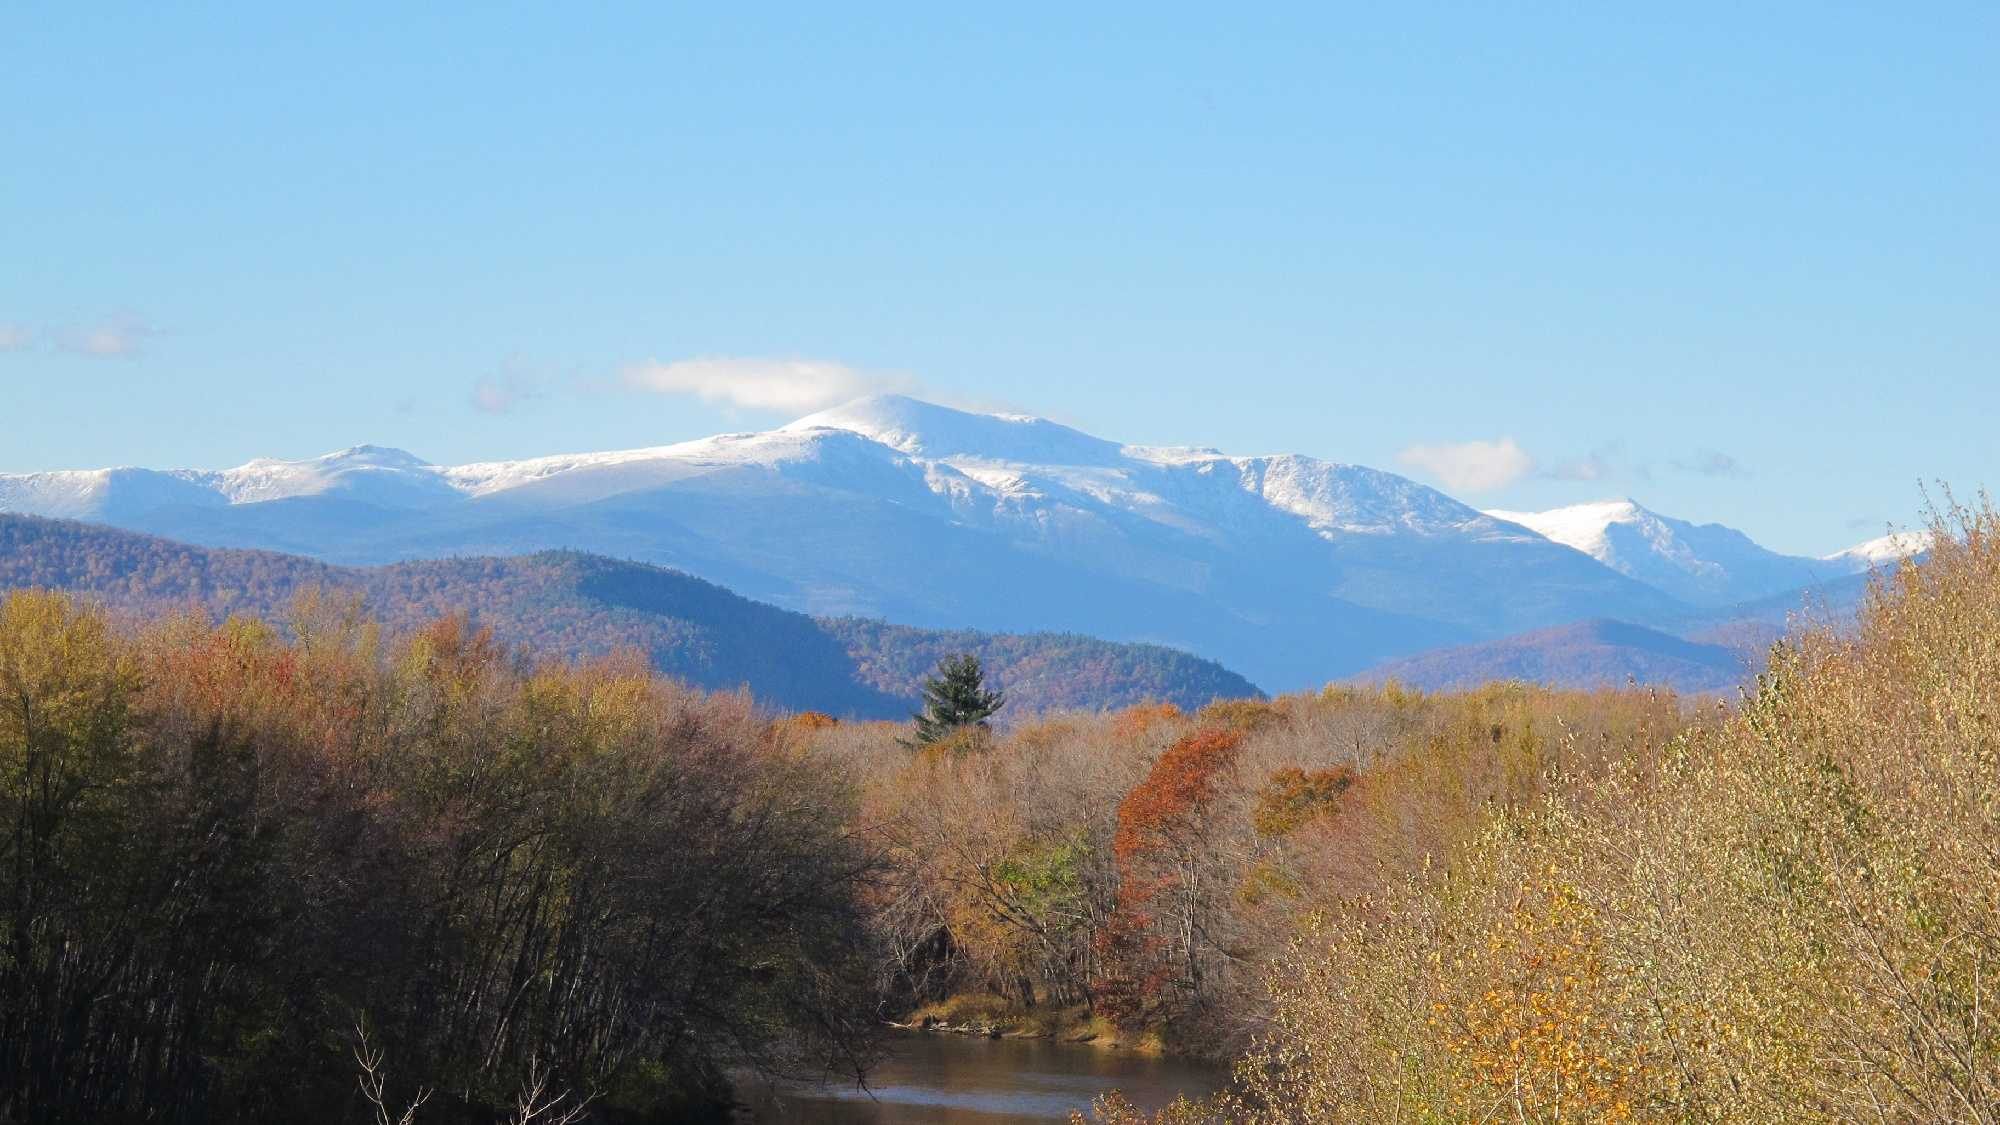 New Hampshire's White Mountains contain 48 majestic peaks that stand more than 4,000 feet tall. The Appalachian Mountain Club recognizes hikers who climb all four dozen. Scroll through to explore.Note: Some photos show the mountains from a distance, while others show the view from atop the summit.